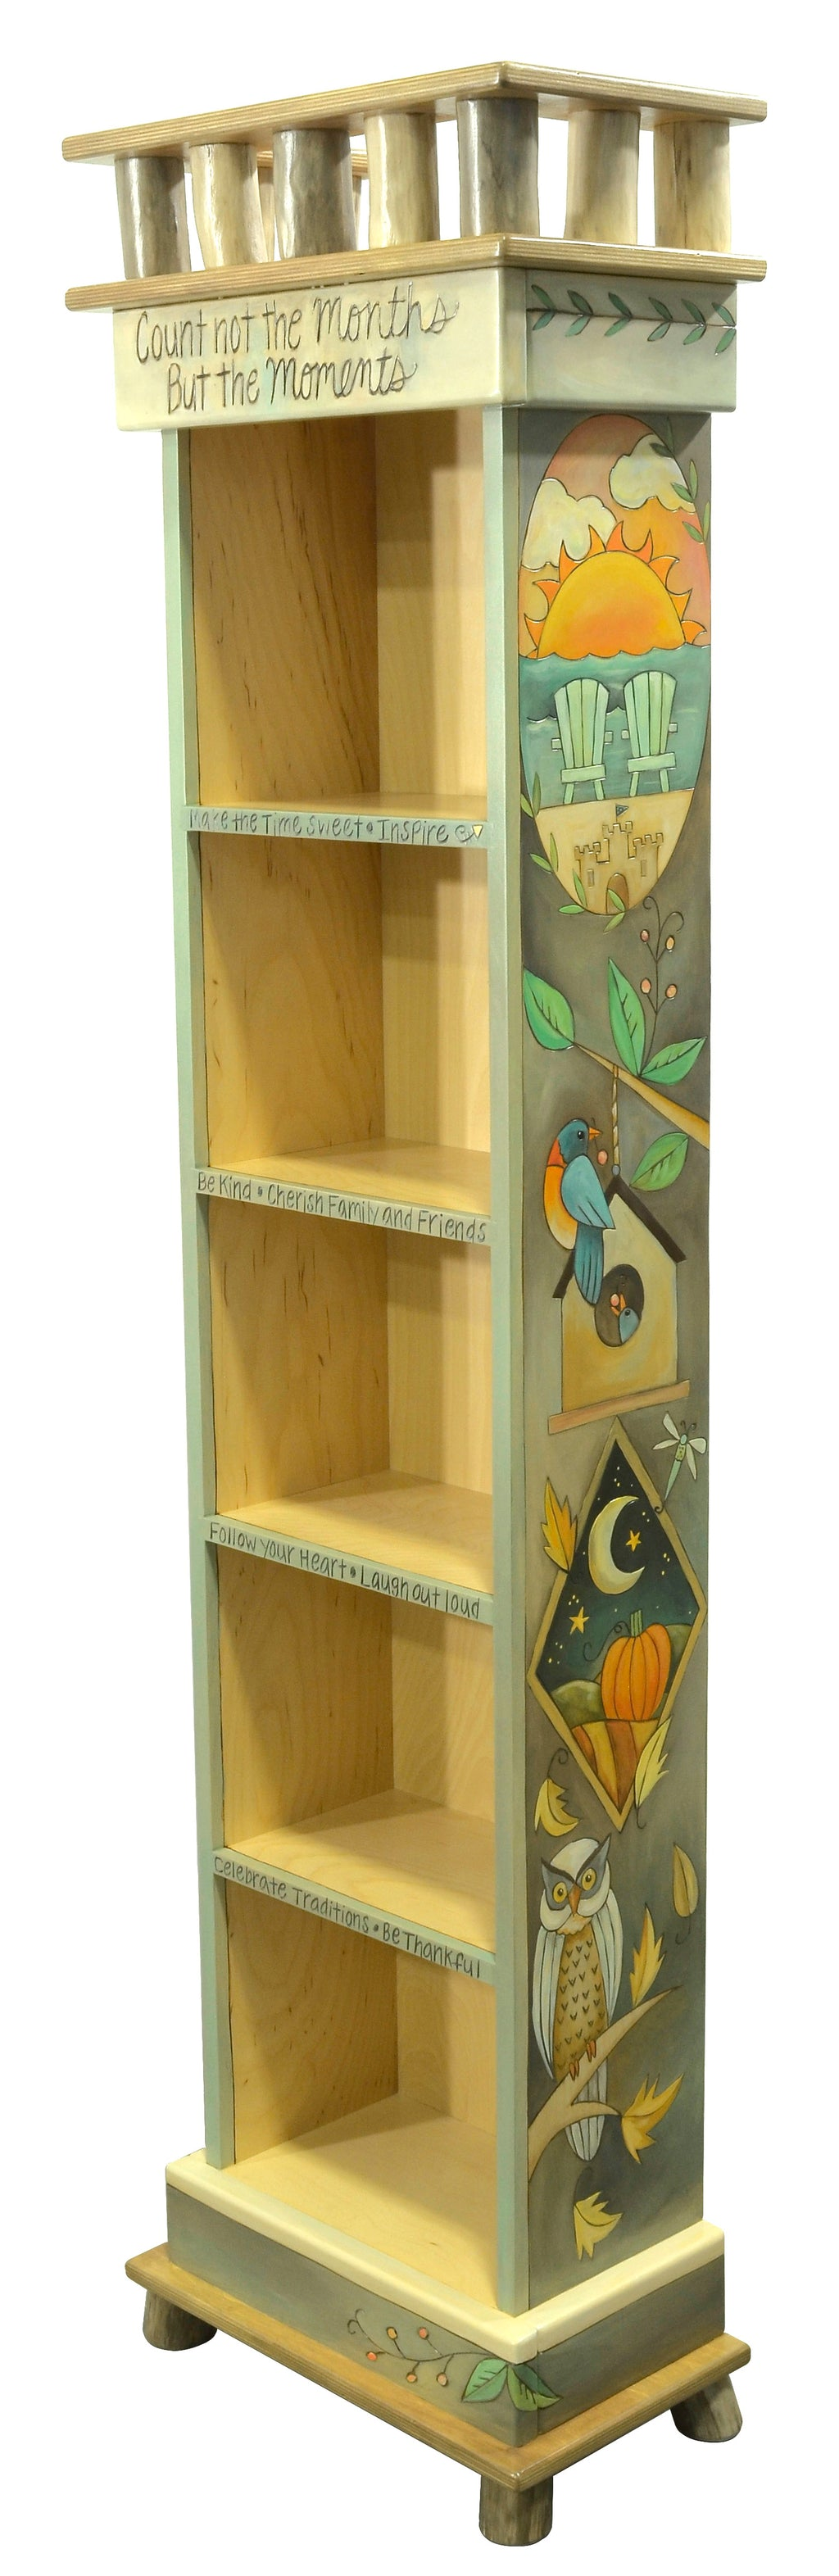 Gorgeous four seasons medallion motif bookcase with various birds throughout